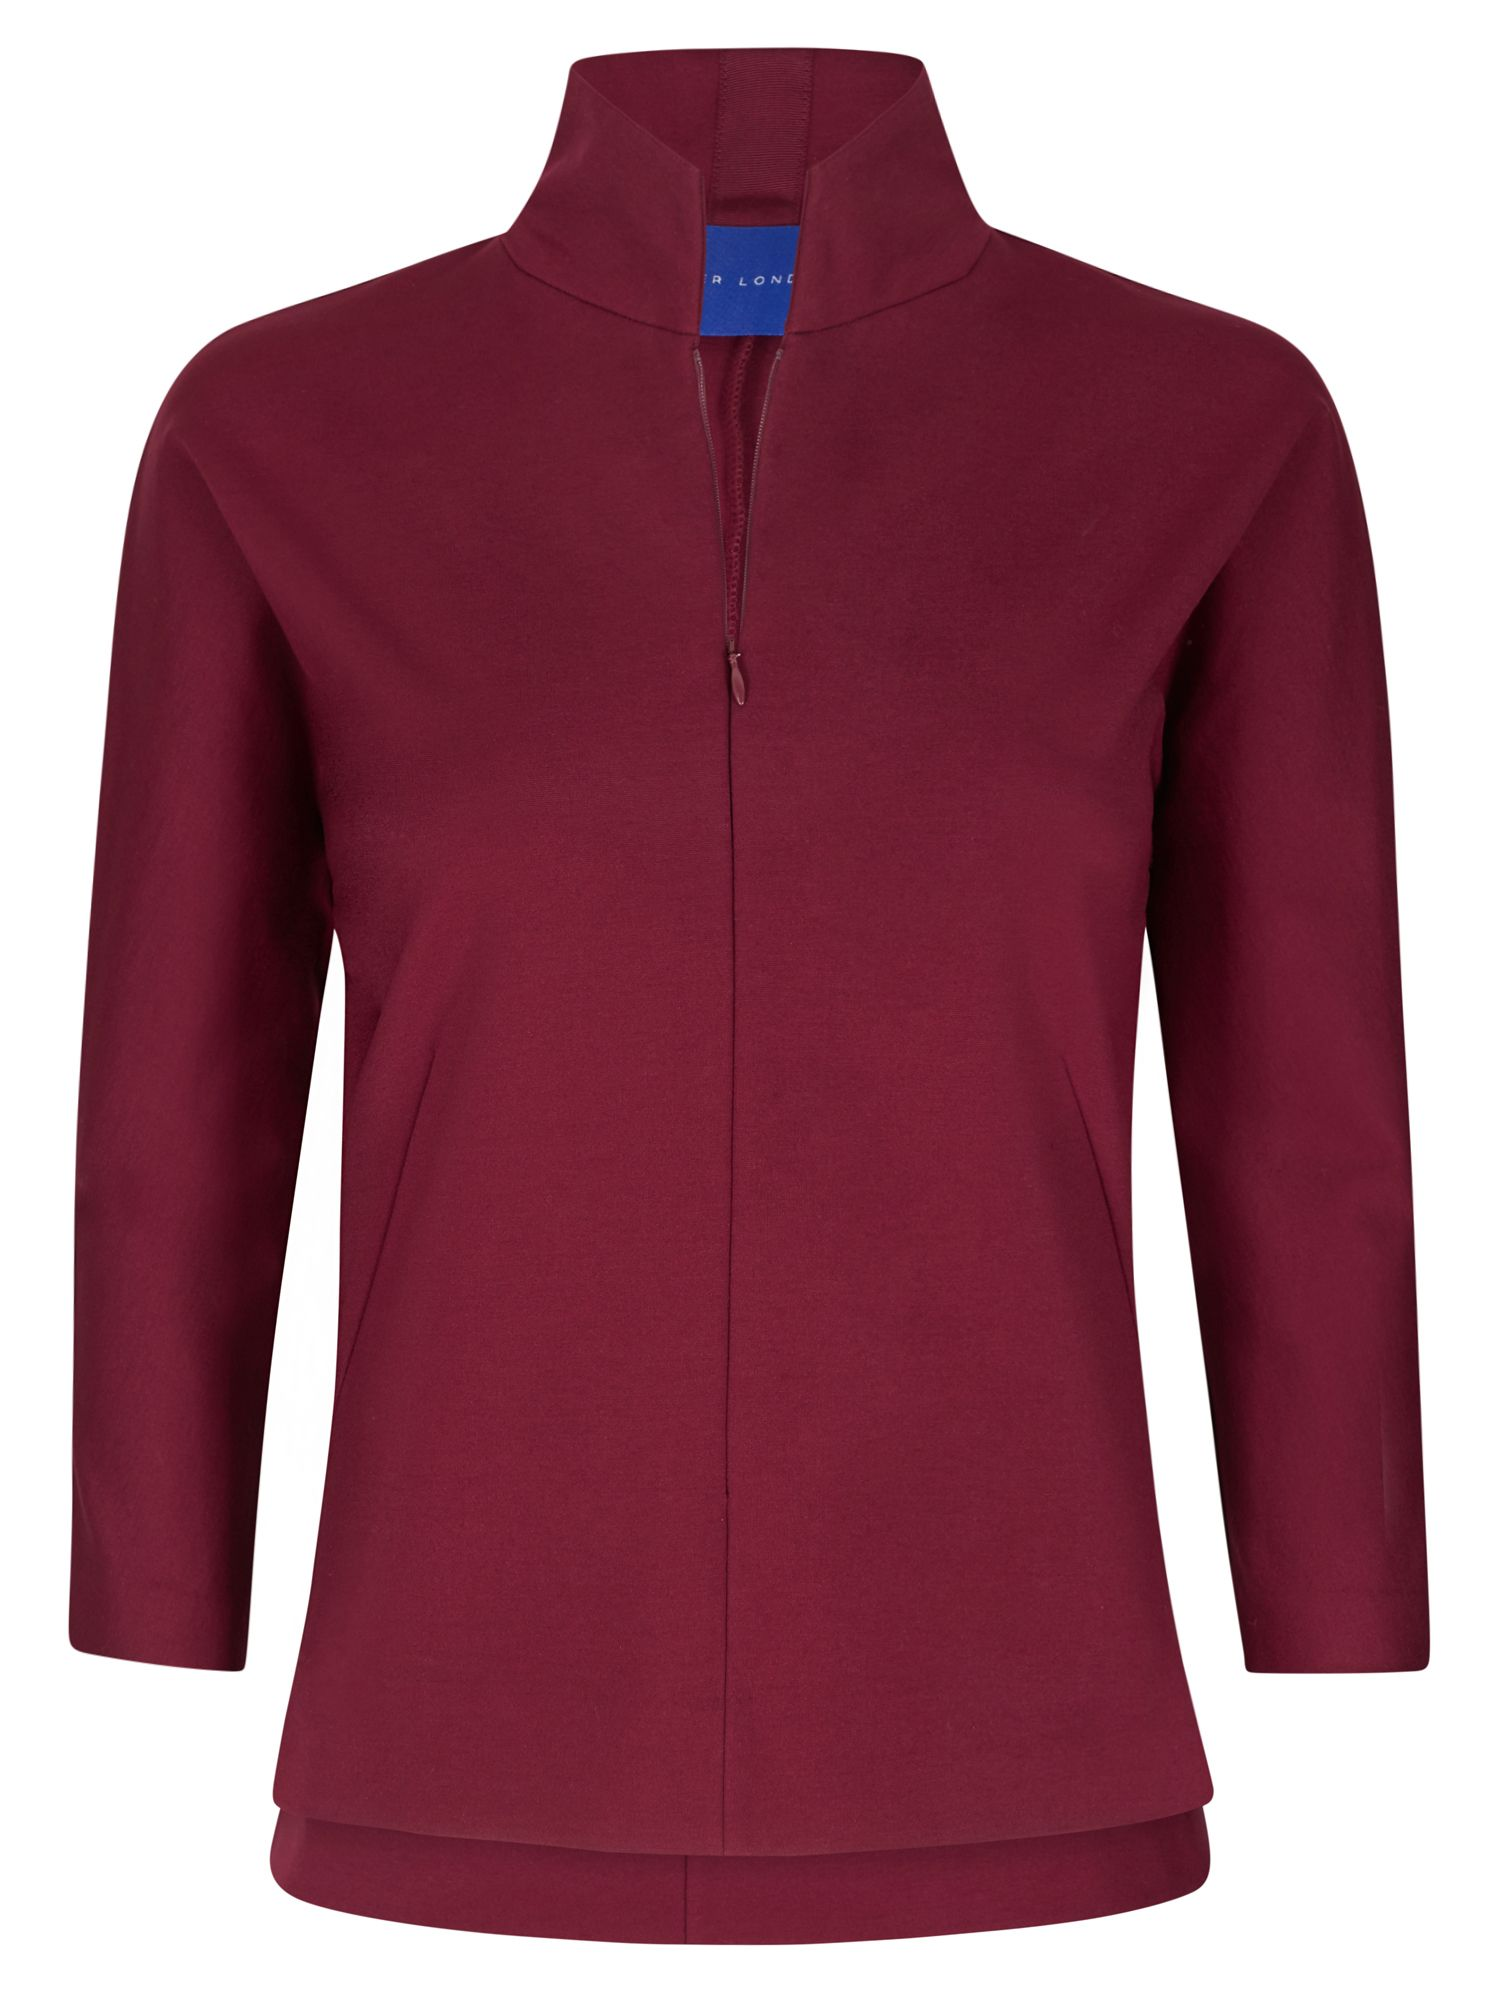 Winser London Emma Miracle Zip Top, Red